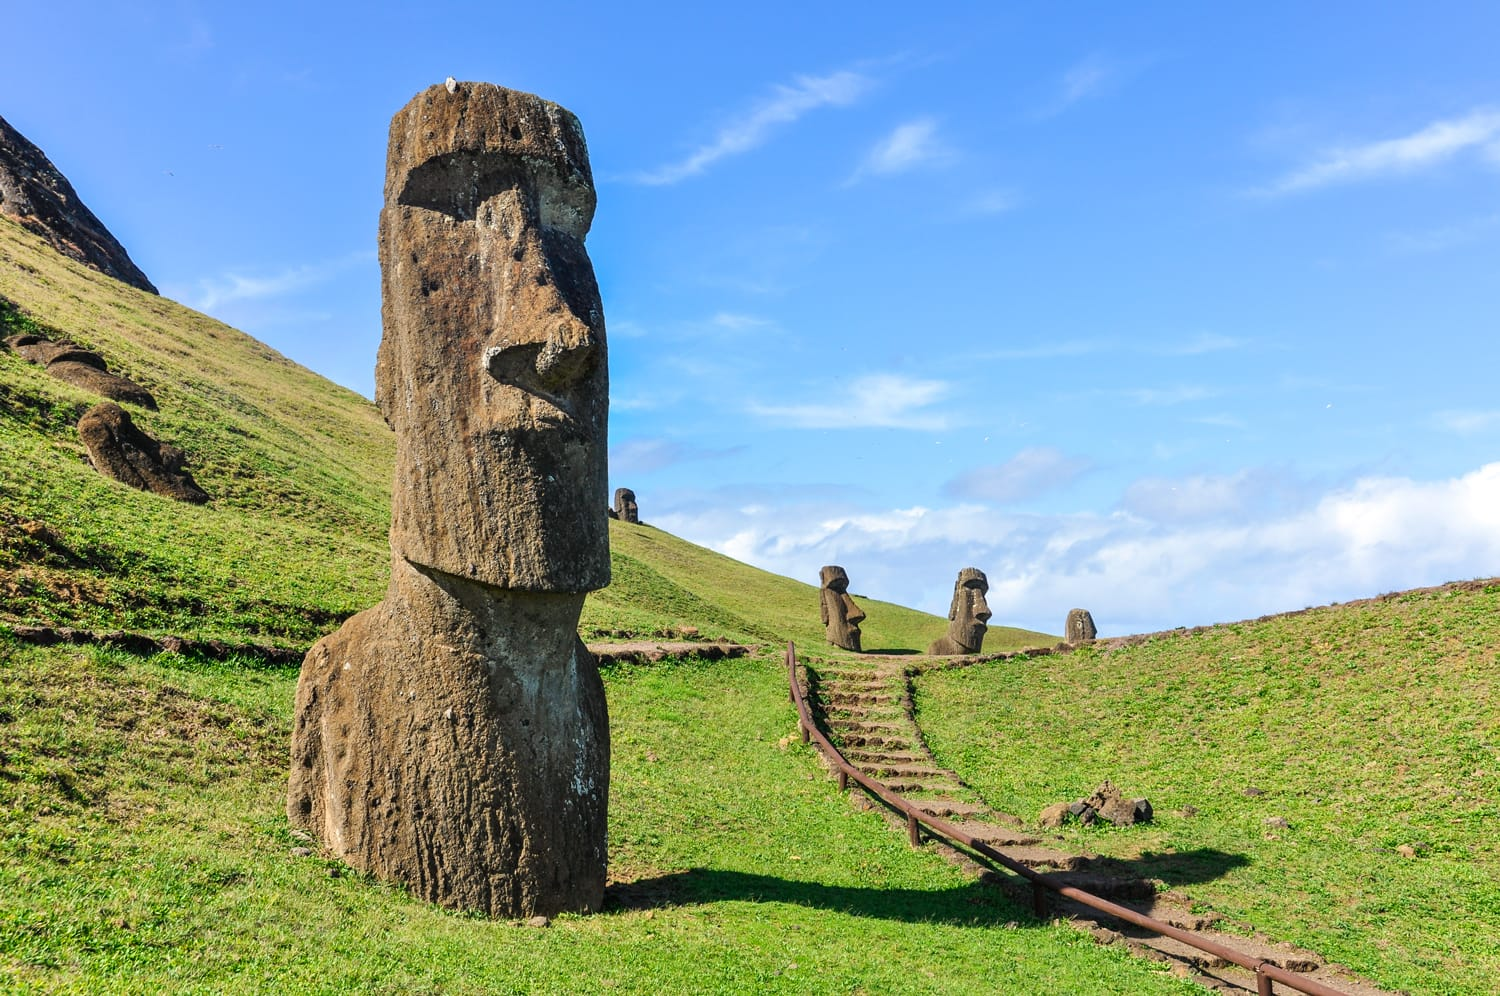 Moai statues in the Rano Raraku Volcano in Easter Island, Chile